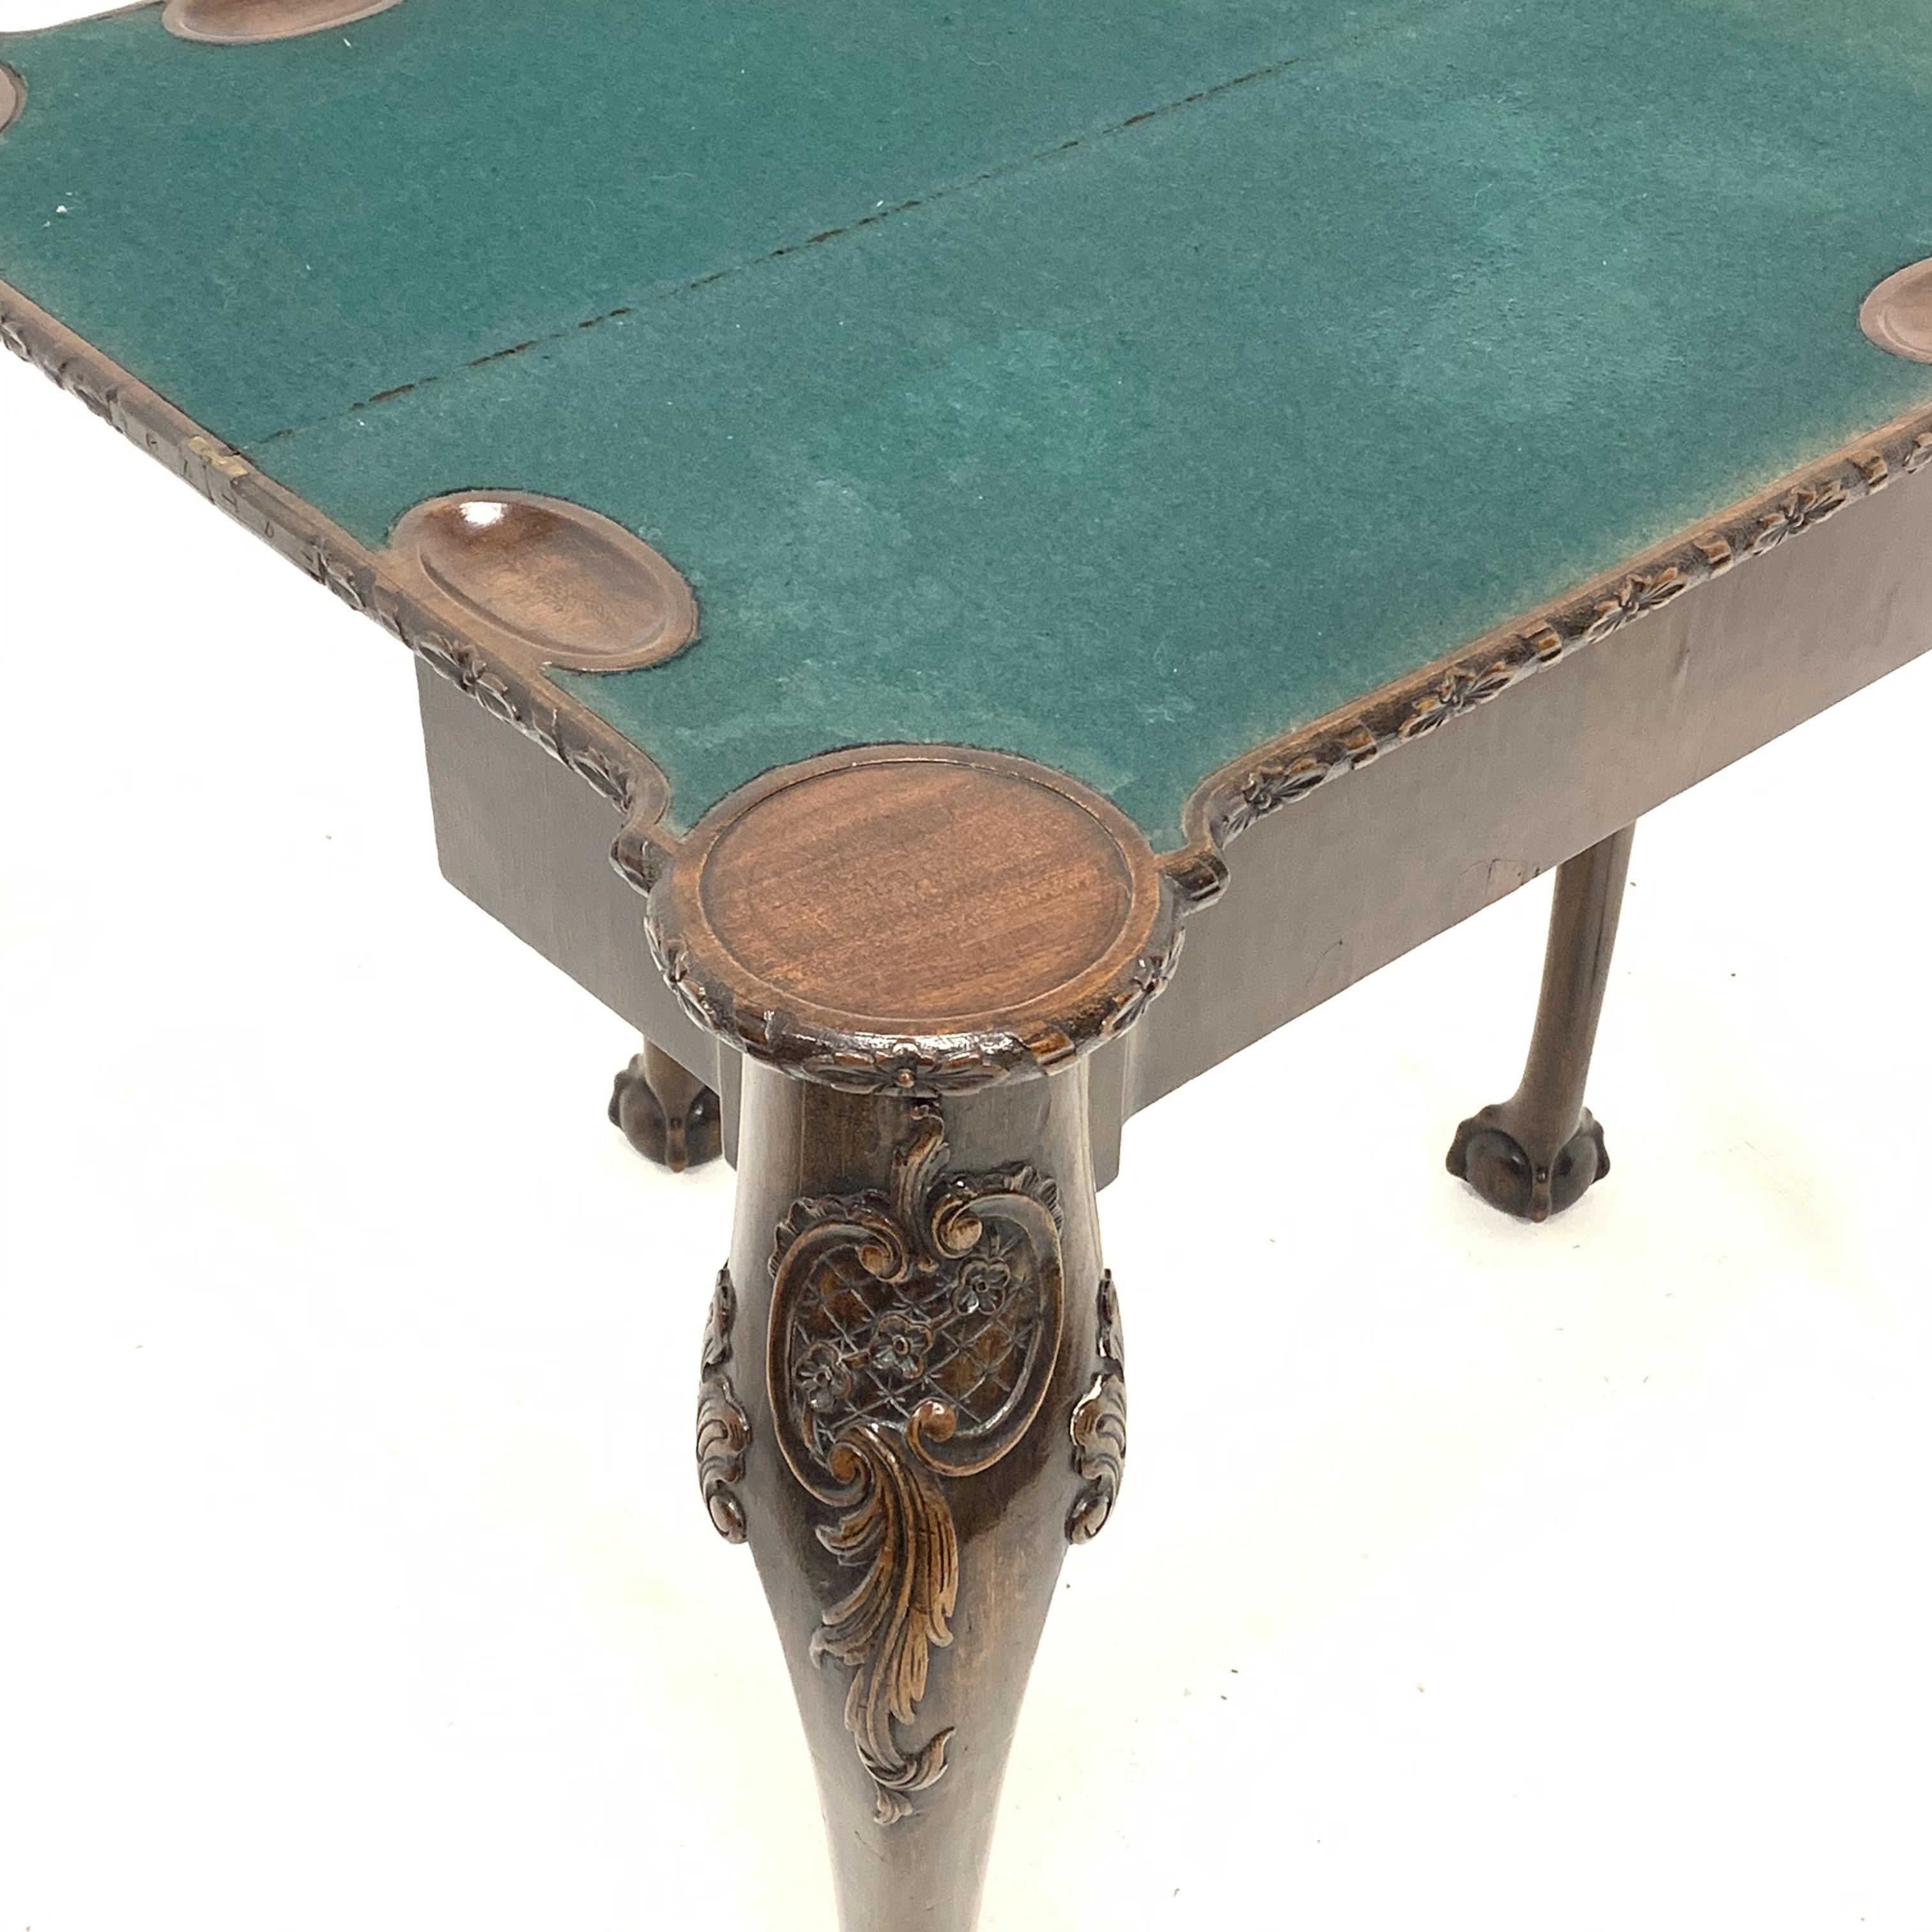 Early 20th century mahogany Georgian style games table - Image 4 of 5